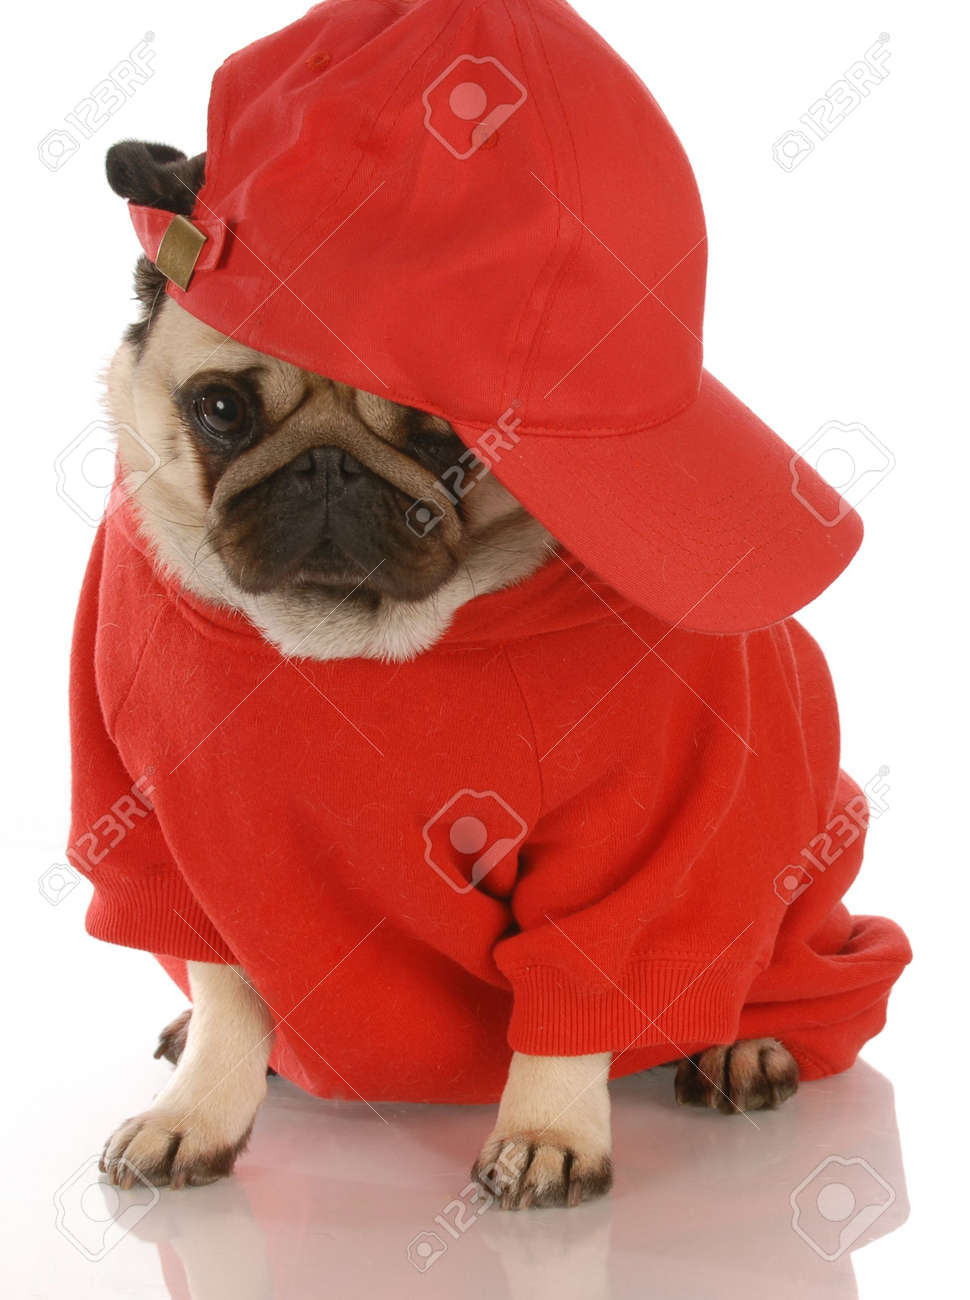 adorable pug wearing red shirt and sports cap Stock Photo - 5654455 b4b3716fbbc